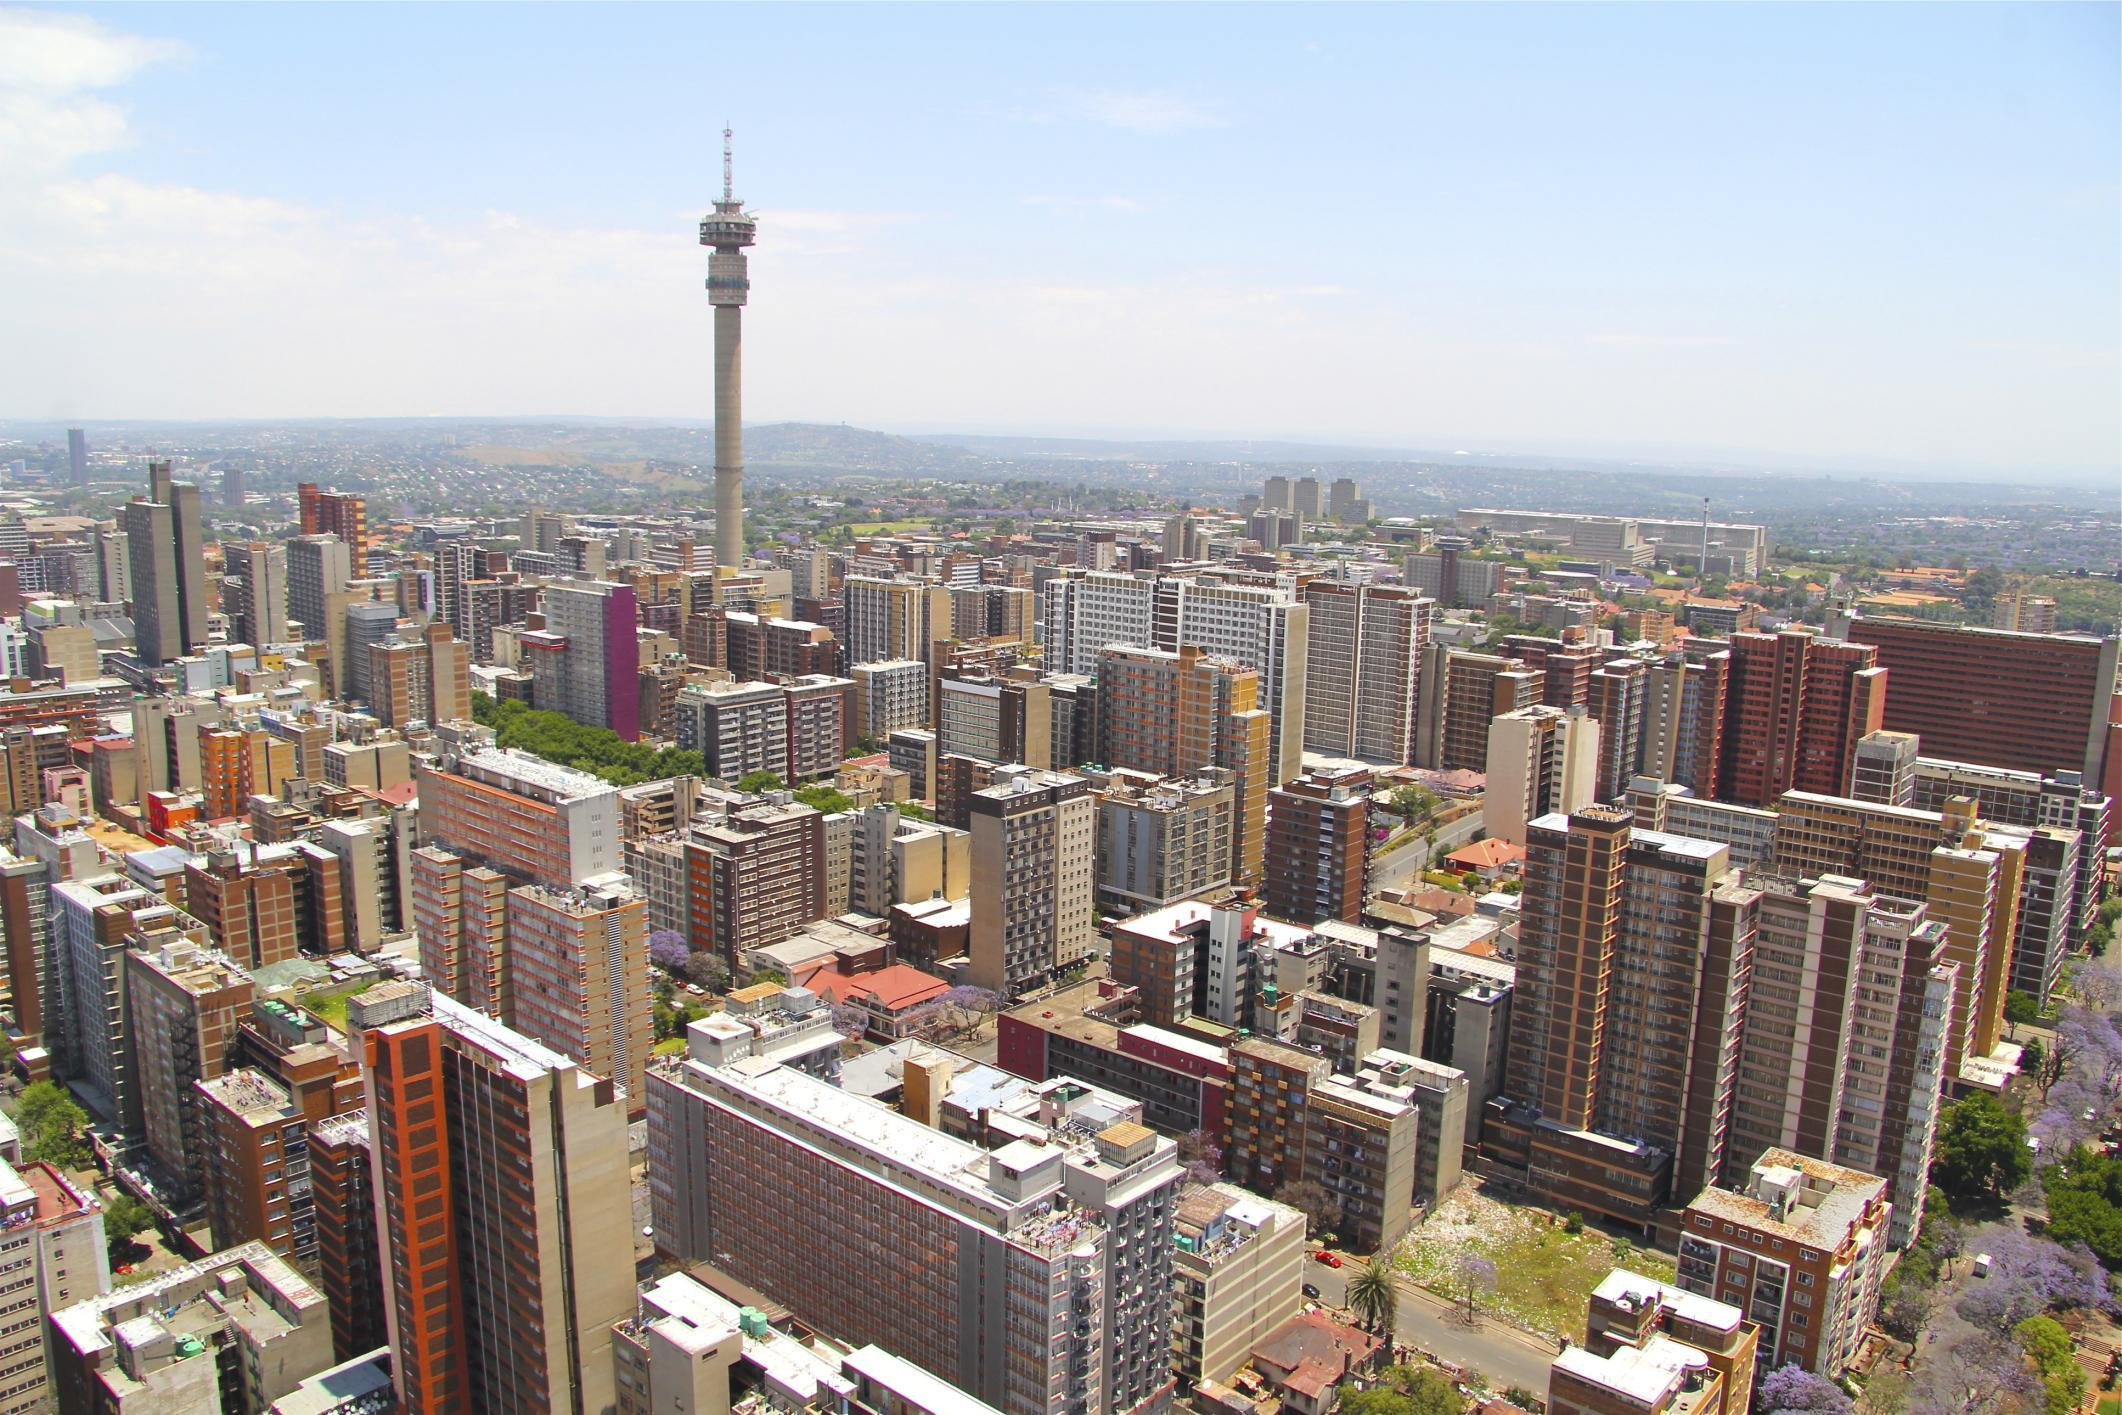 How to Spend 1 Day in Johannesburg